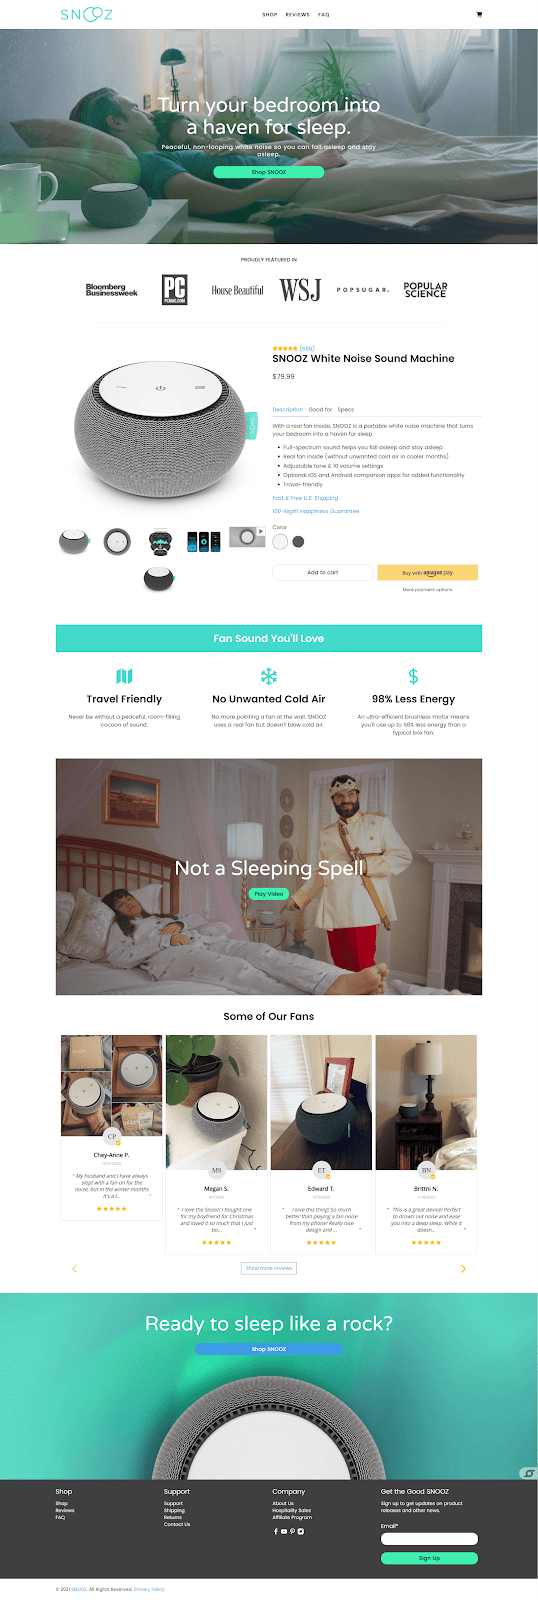 one product shopify store design